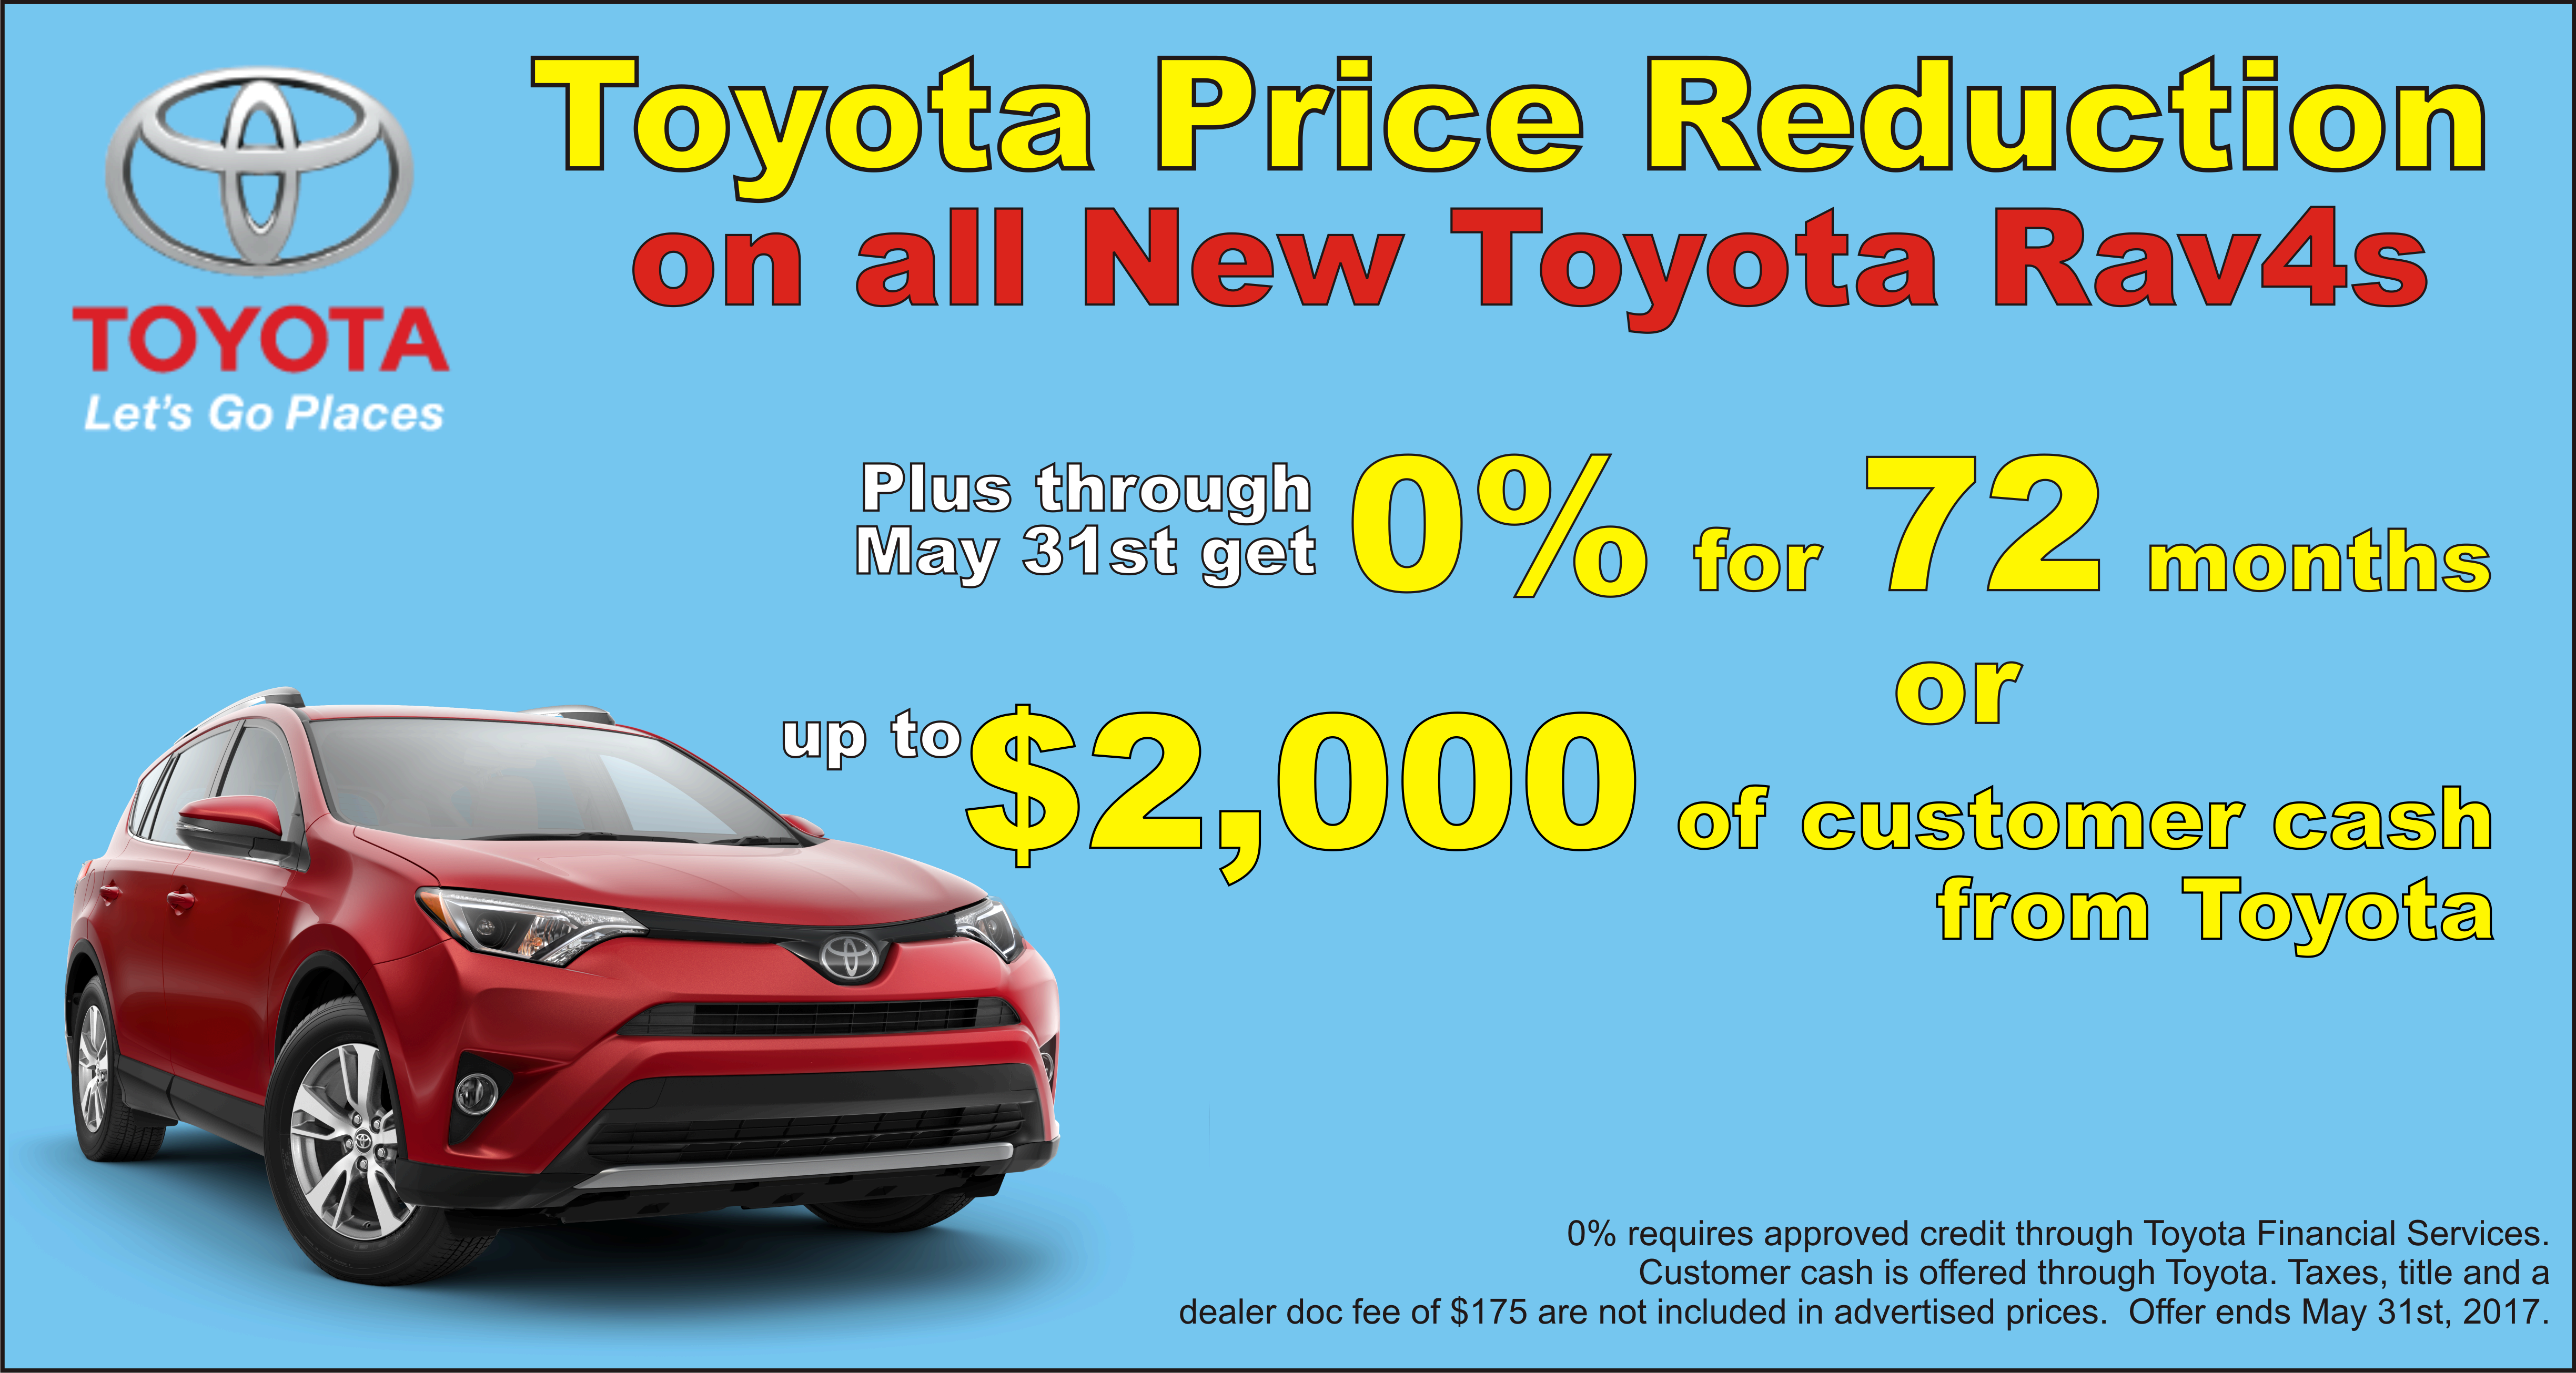 Price reduction on all Toyota Rav4 models.  Visit us at University Toyota on 60 Don Knotts Blvd to test drive one.